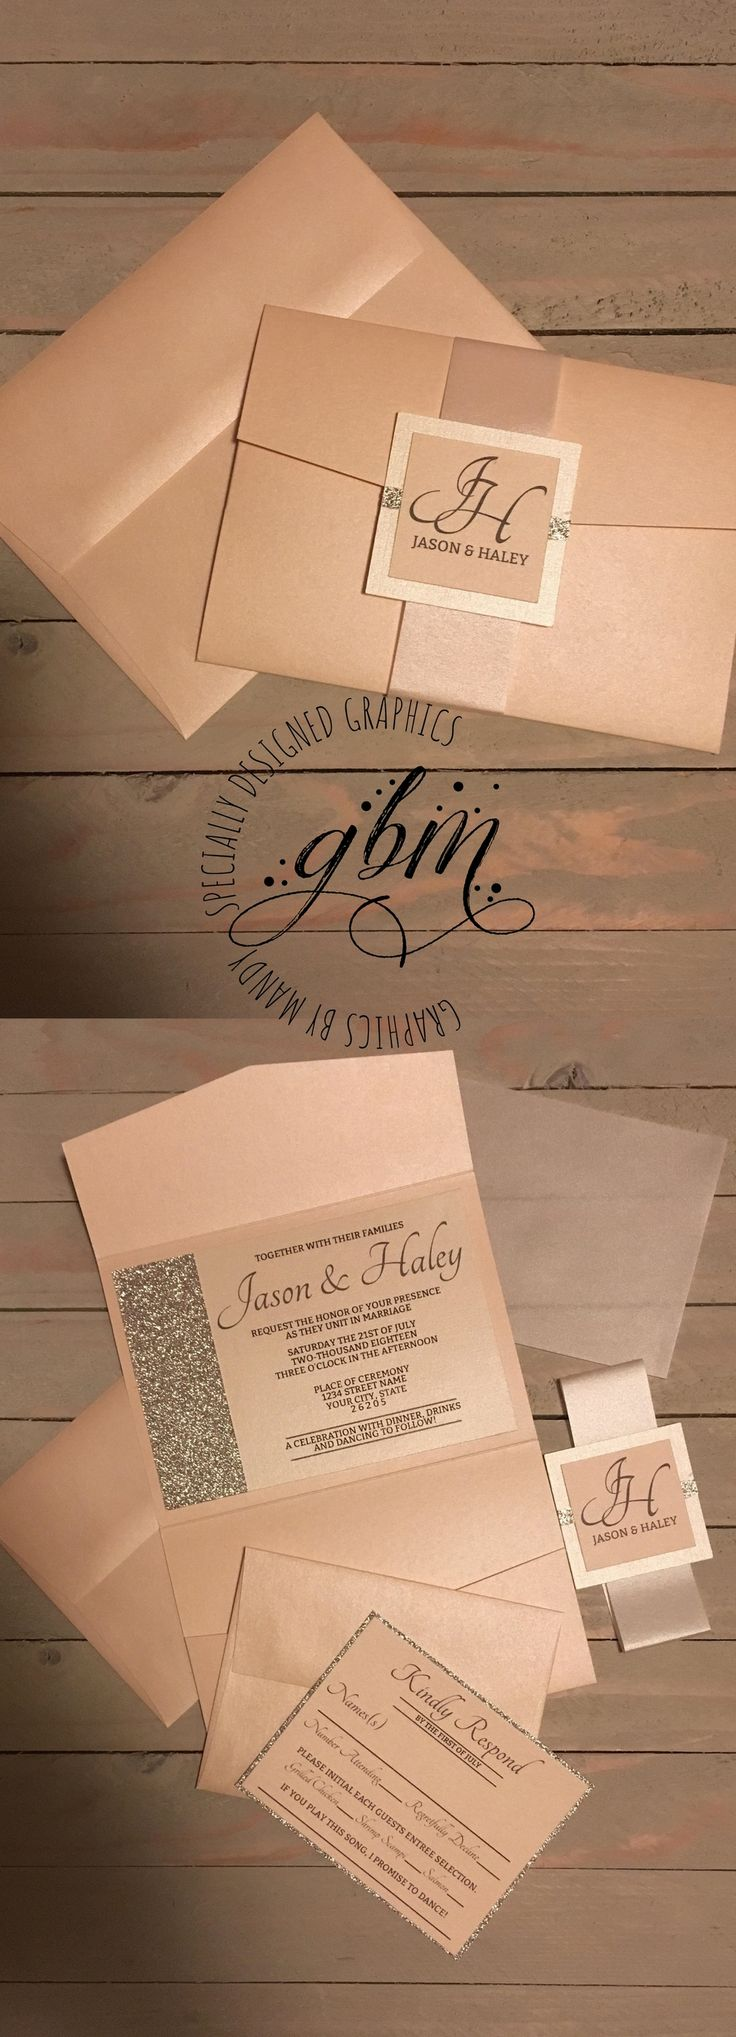 how to put guest names on wedding invitations%0A   Feelin Peachy   Luxury Wedding Invitation  Light peach and silver glitter  pocket fold  This set includes a shimmer light peach pocket fold with  matching